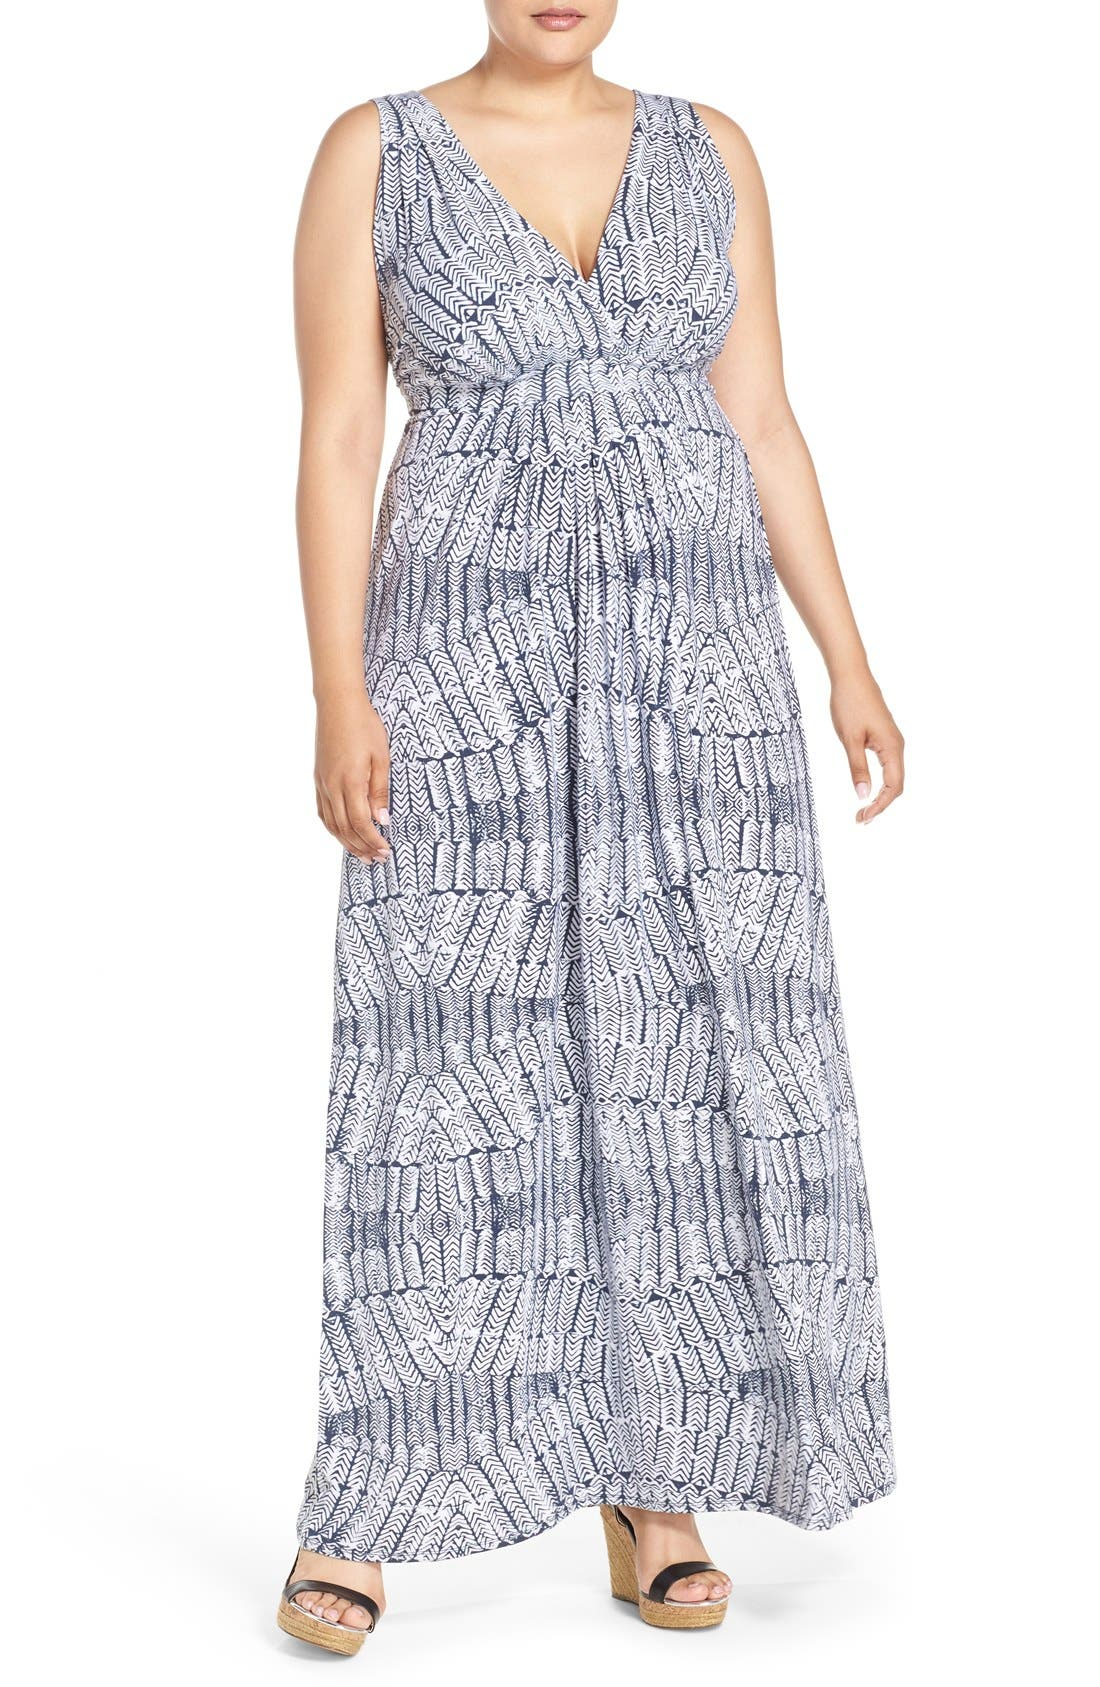 Chloe Empire Waist Maxi Dress,                             Main thumbnail 1, color,                             Stamped Feathers